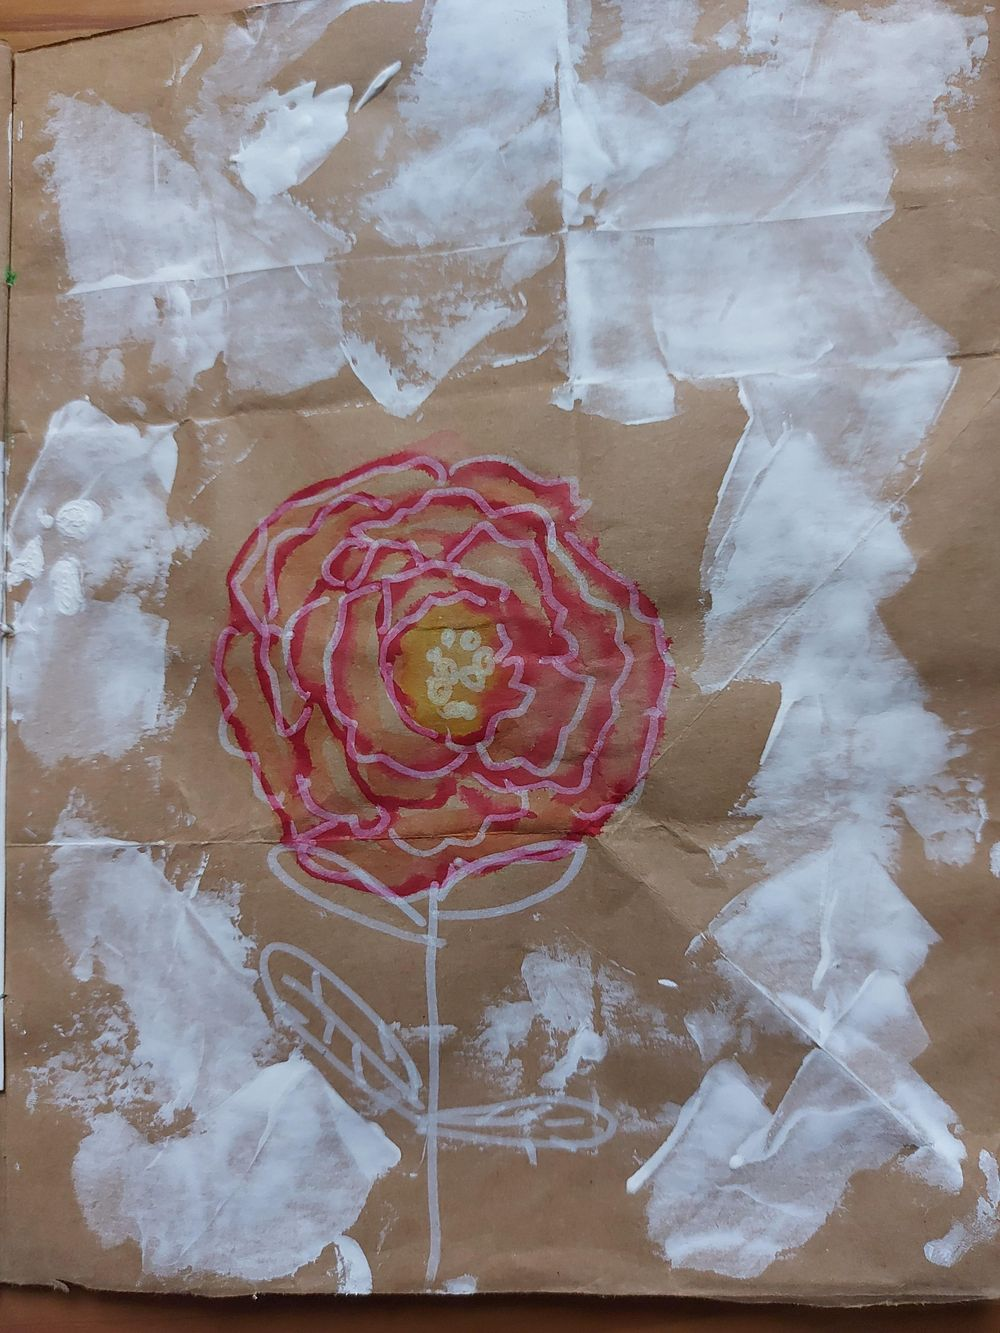 My upcycled paper bag - image 3 - student project